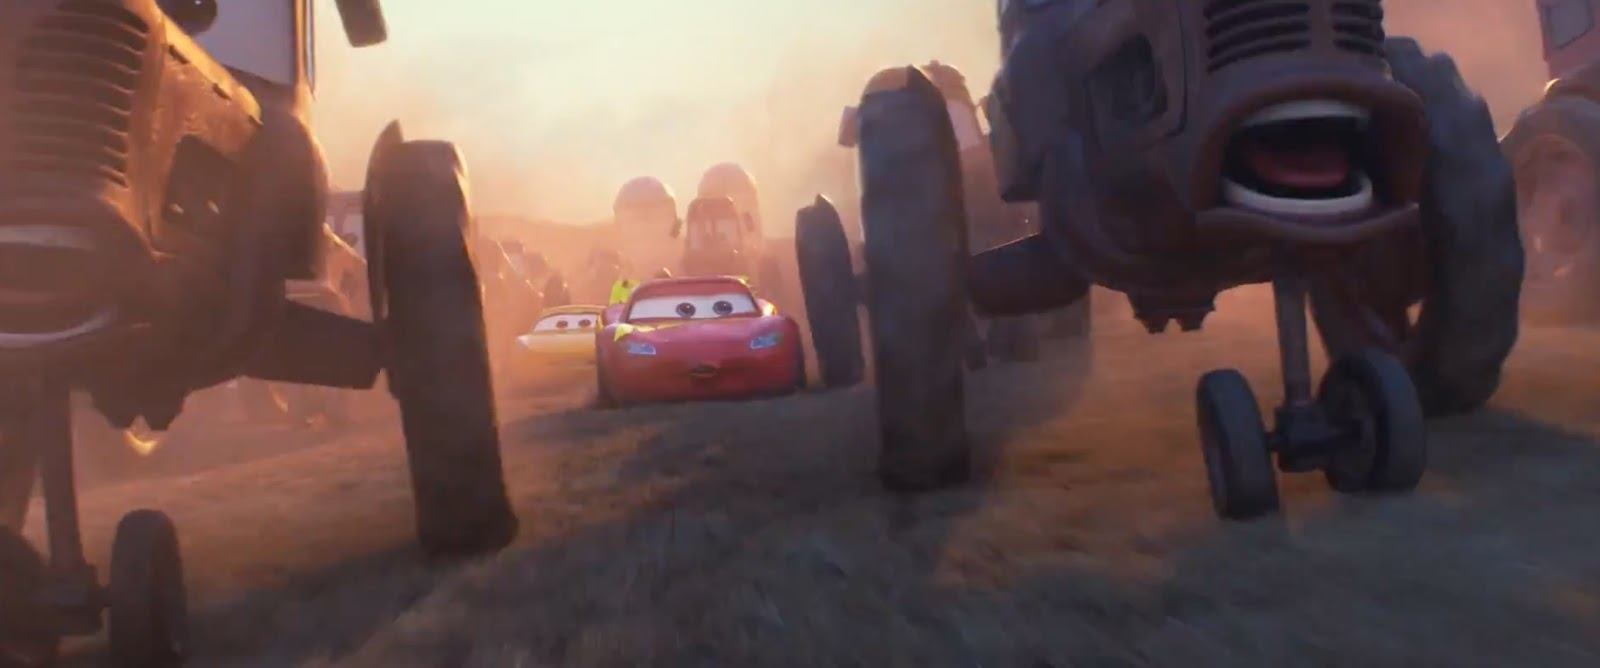 Cars 3 Official U.S. Trailer: Is Lightning McQueen Finished? Join Us On YouTube Live Tonight